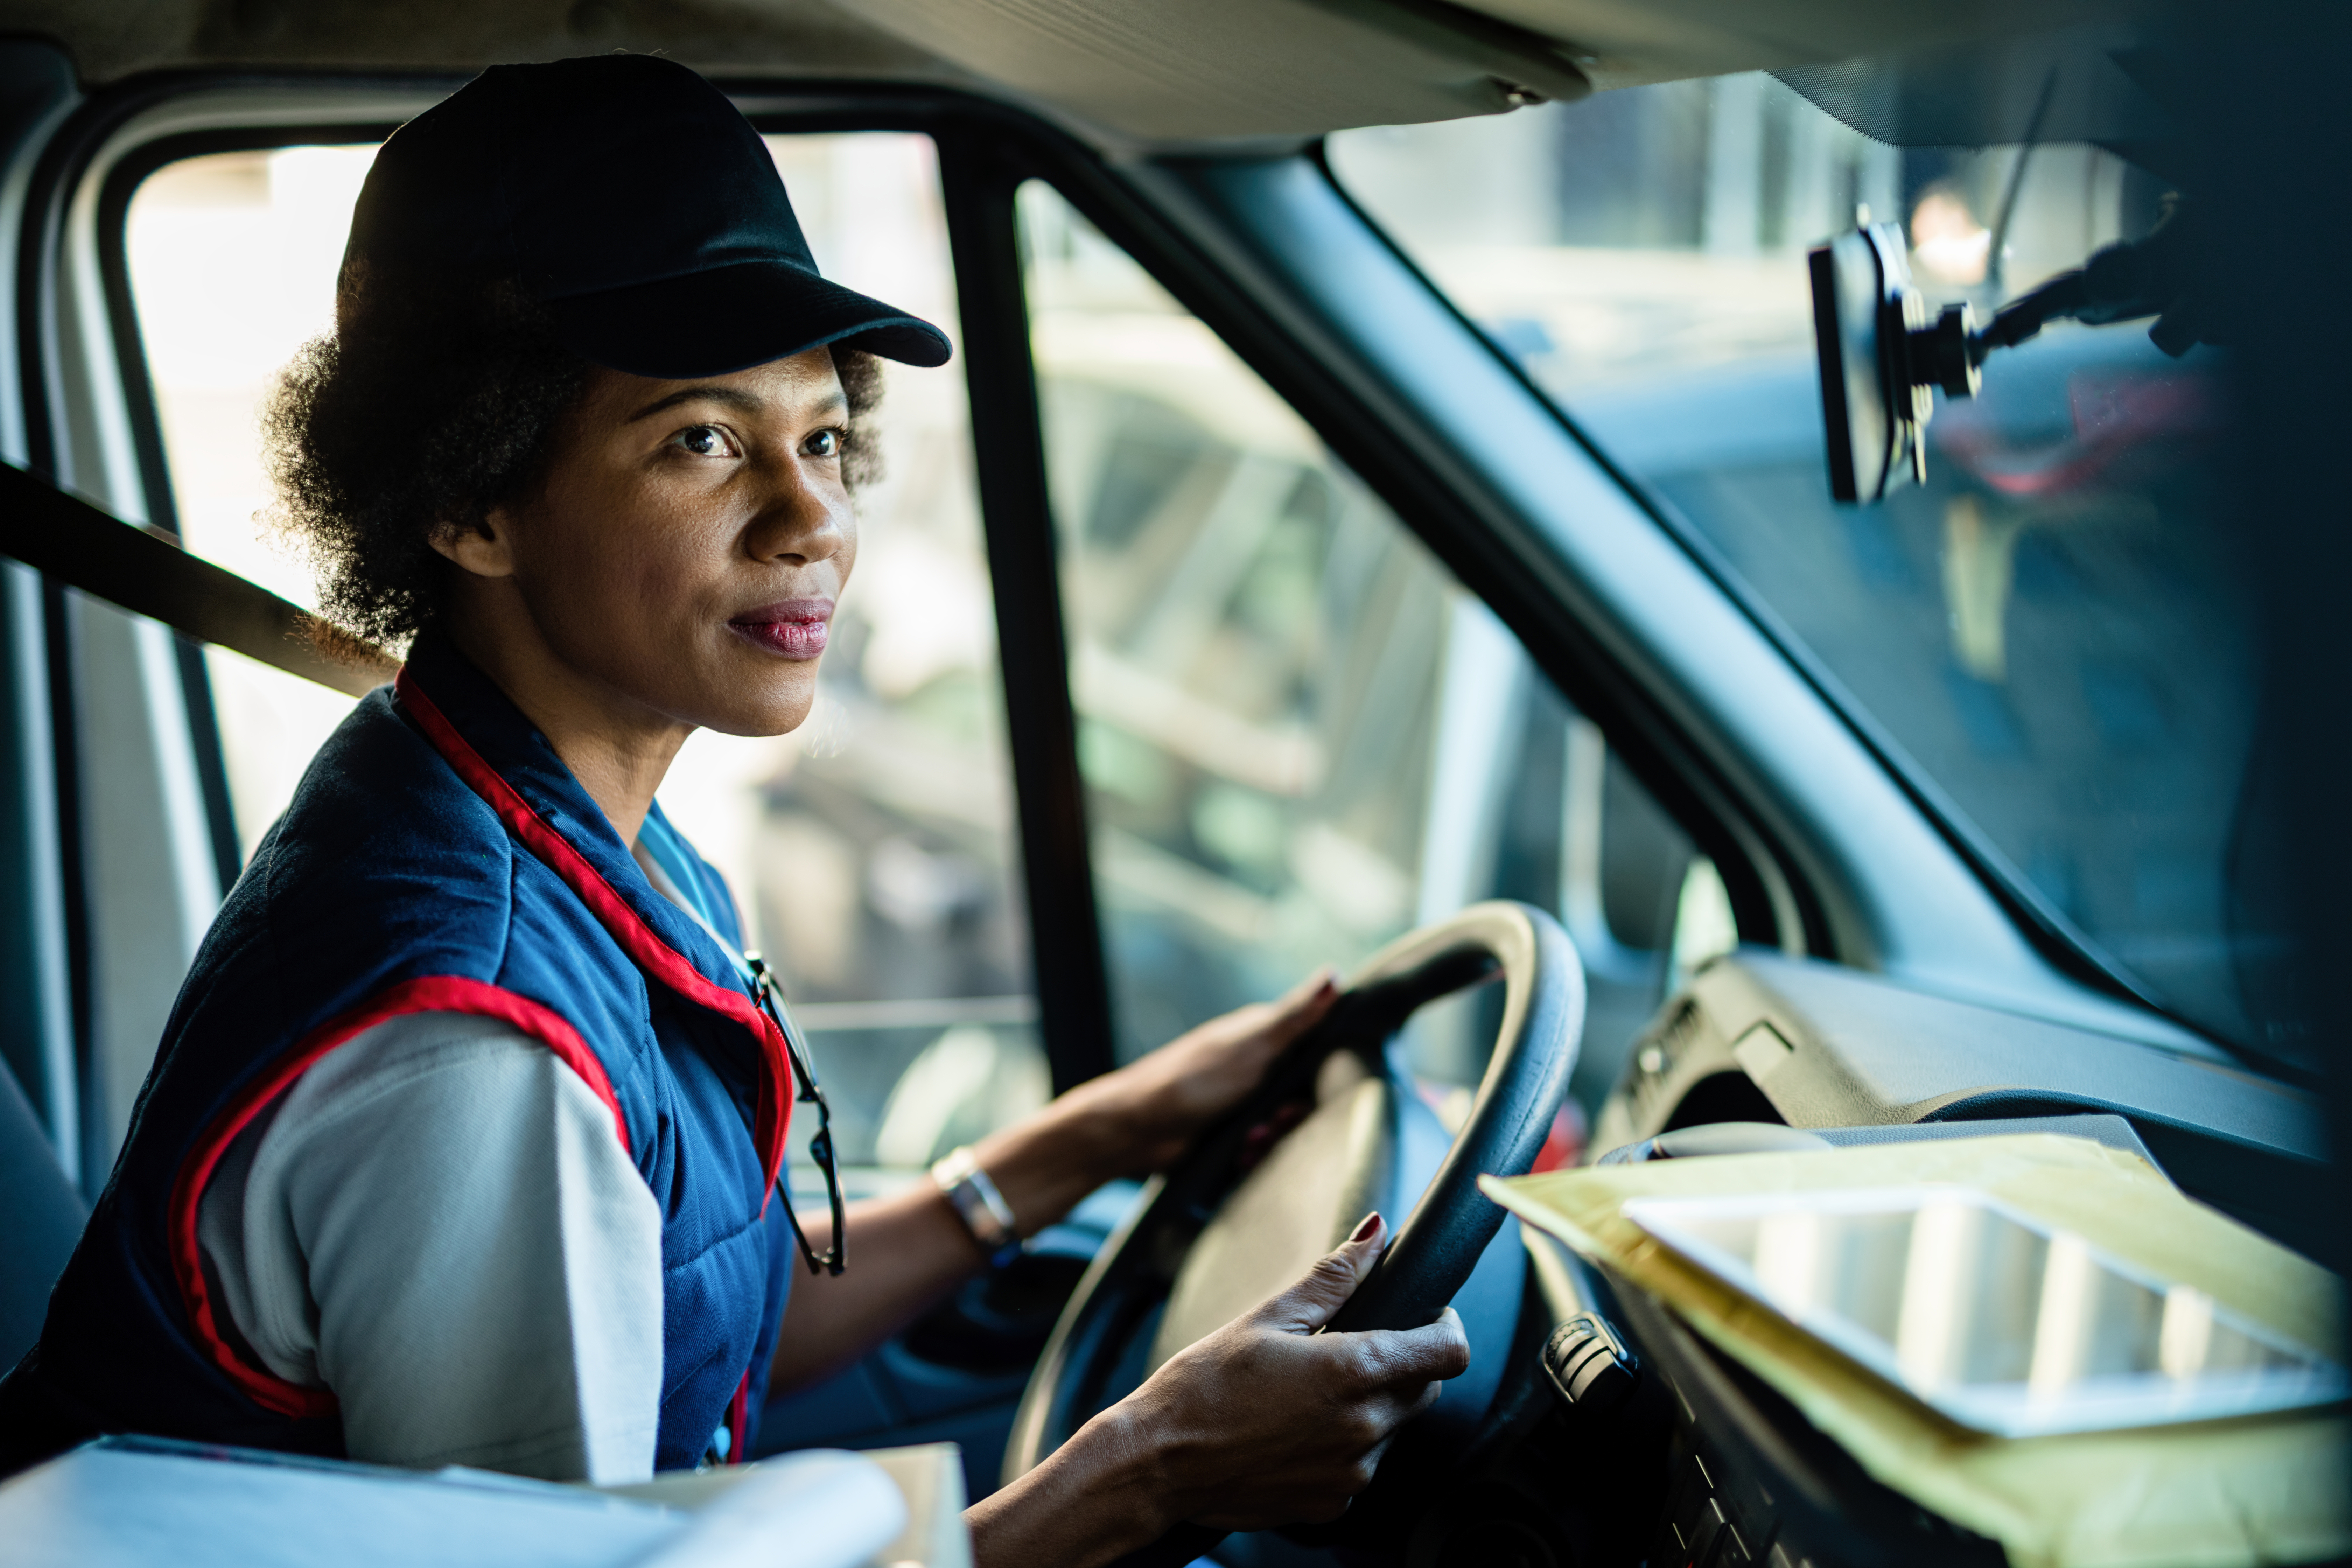 A woman wearing a black hat and a blue and red vest is driving a truck while holding the steering wheel with two hands and looking in the rear-view mirror.